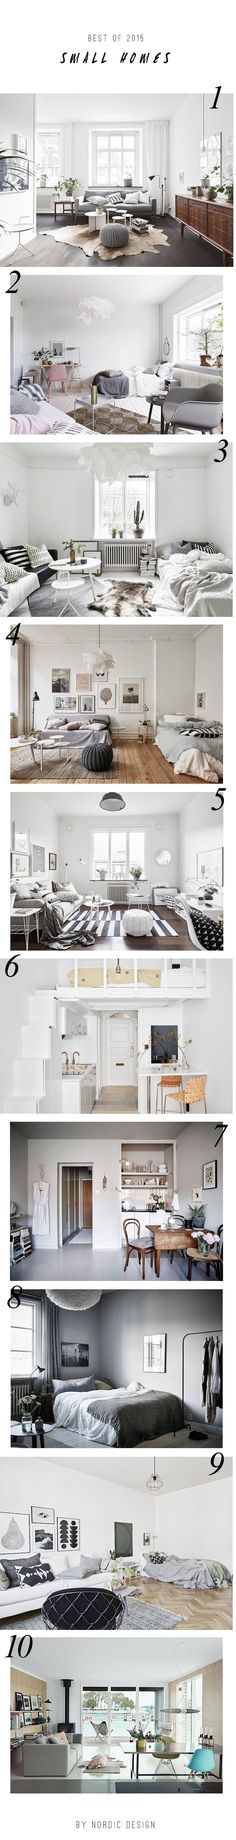 10 beautiful small homes styled the Scandinavian way | Best of 2015 - Nordic Design